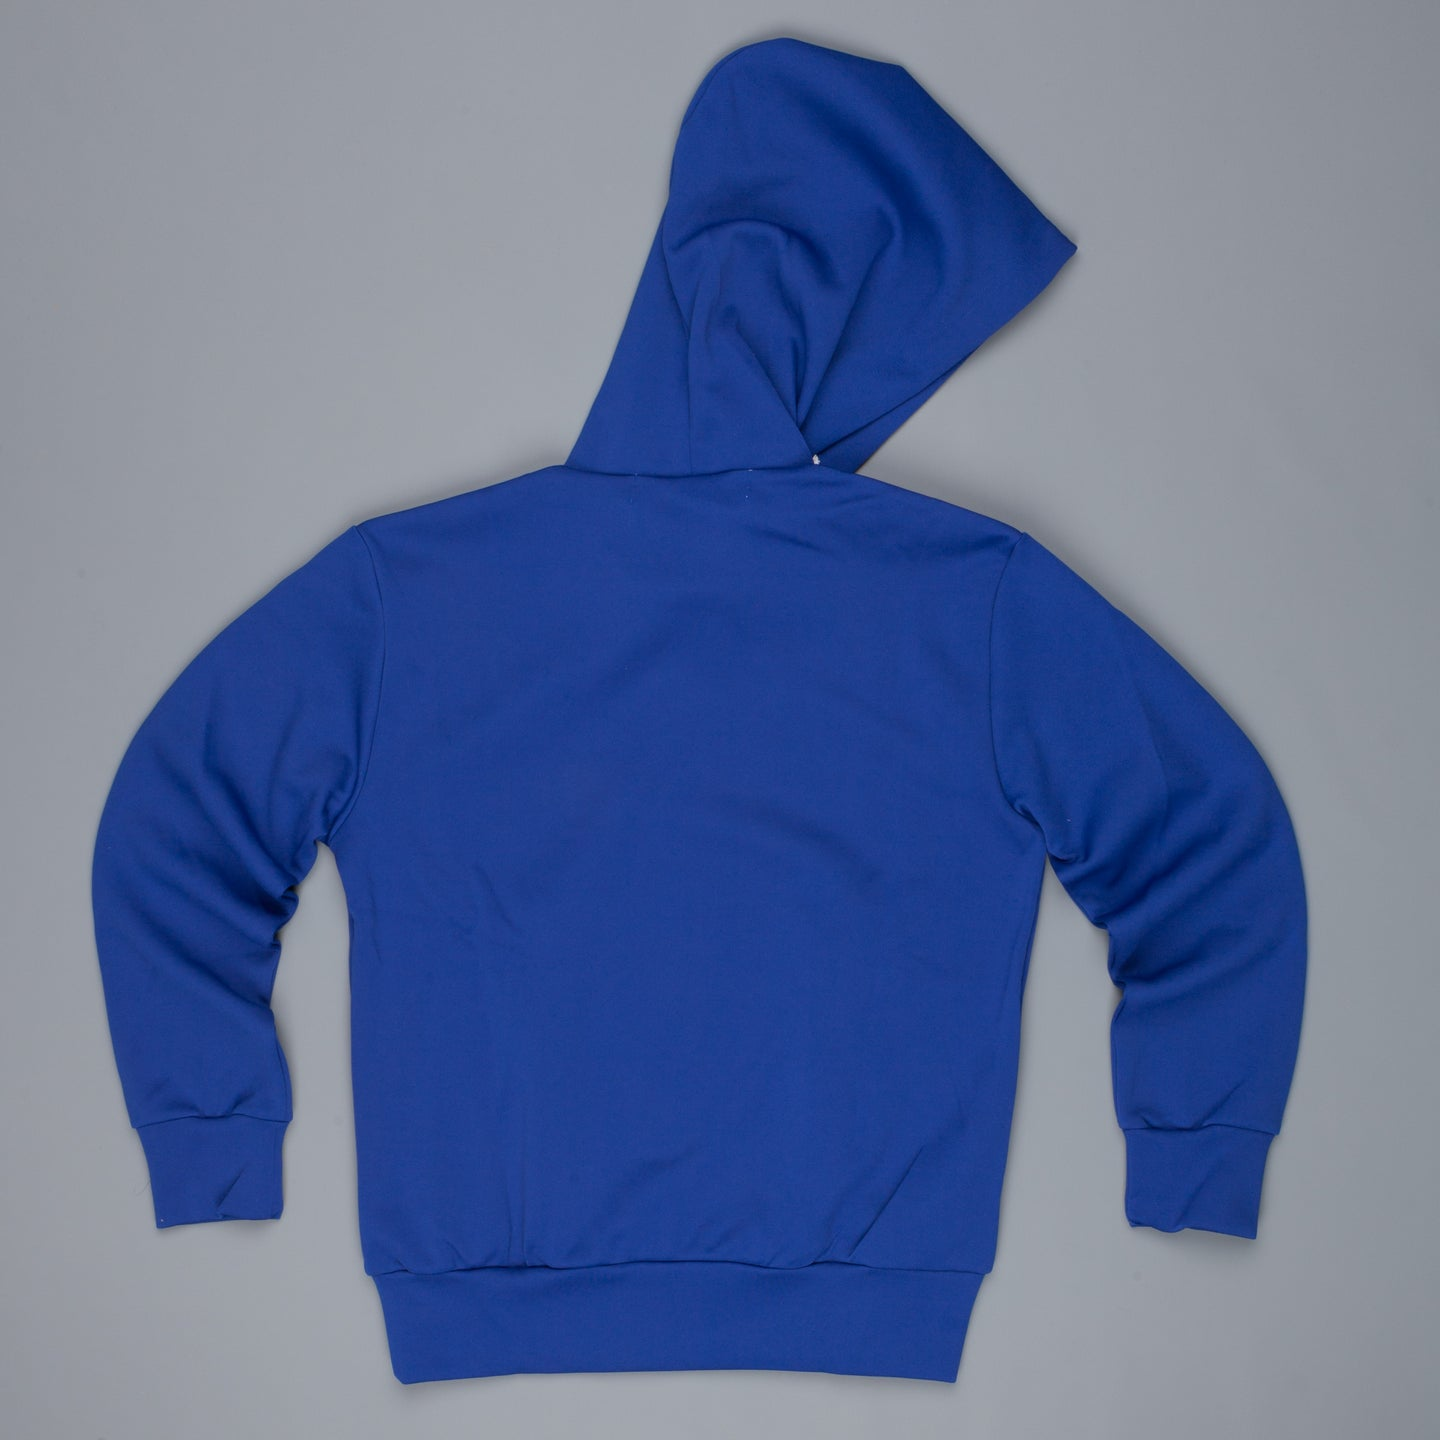 Comme des Garçons Hooded Sweat Shirt red Heart Blue